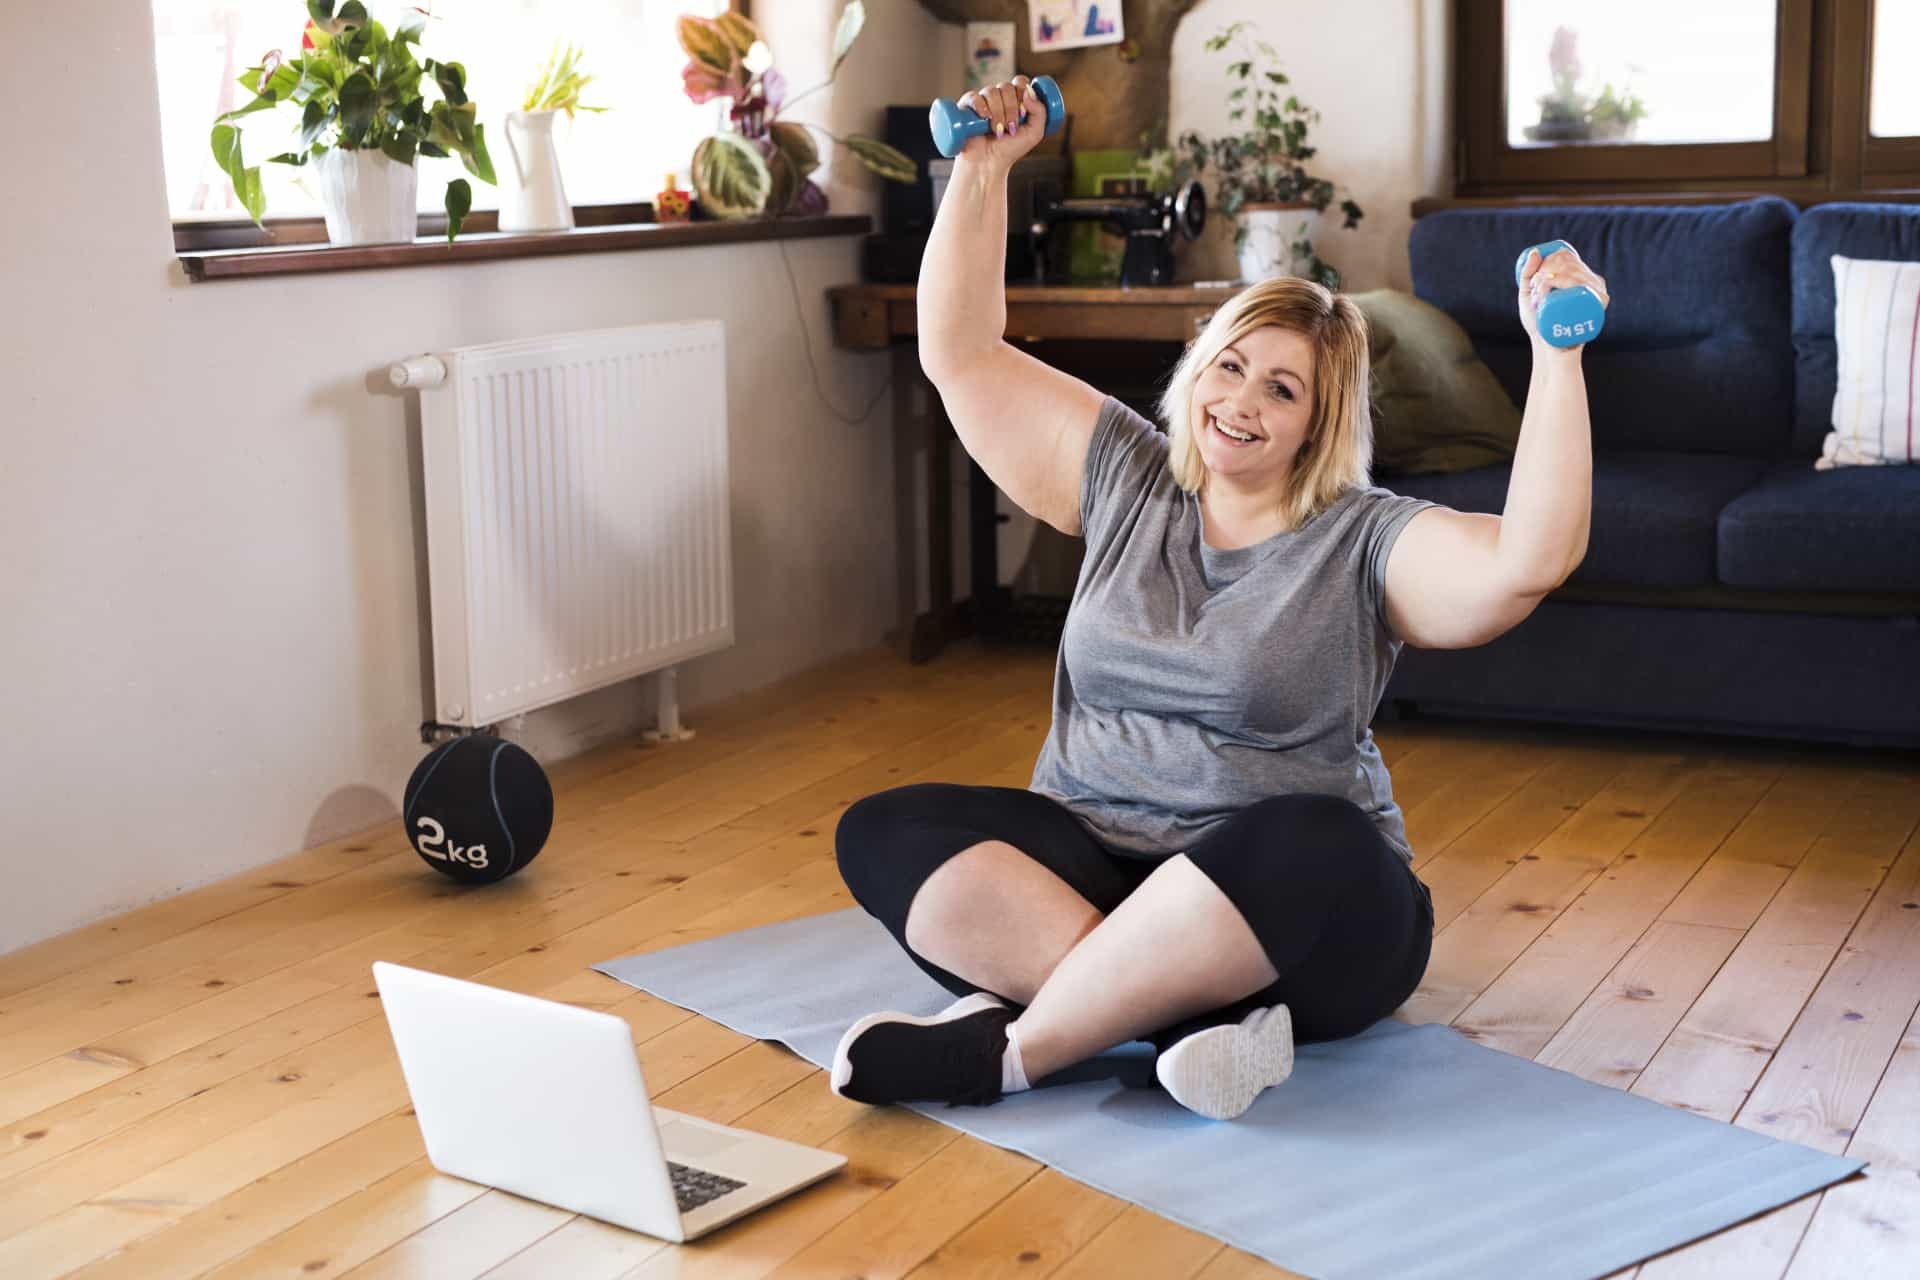 Skip the gym and do these exercises at home instead